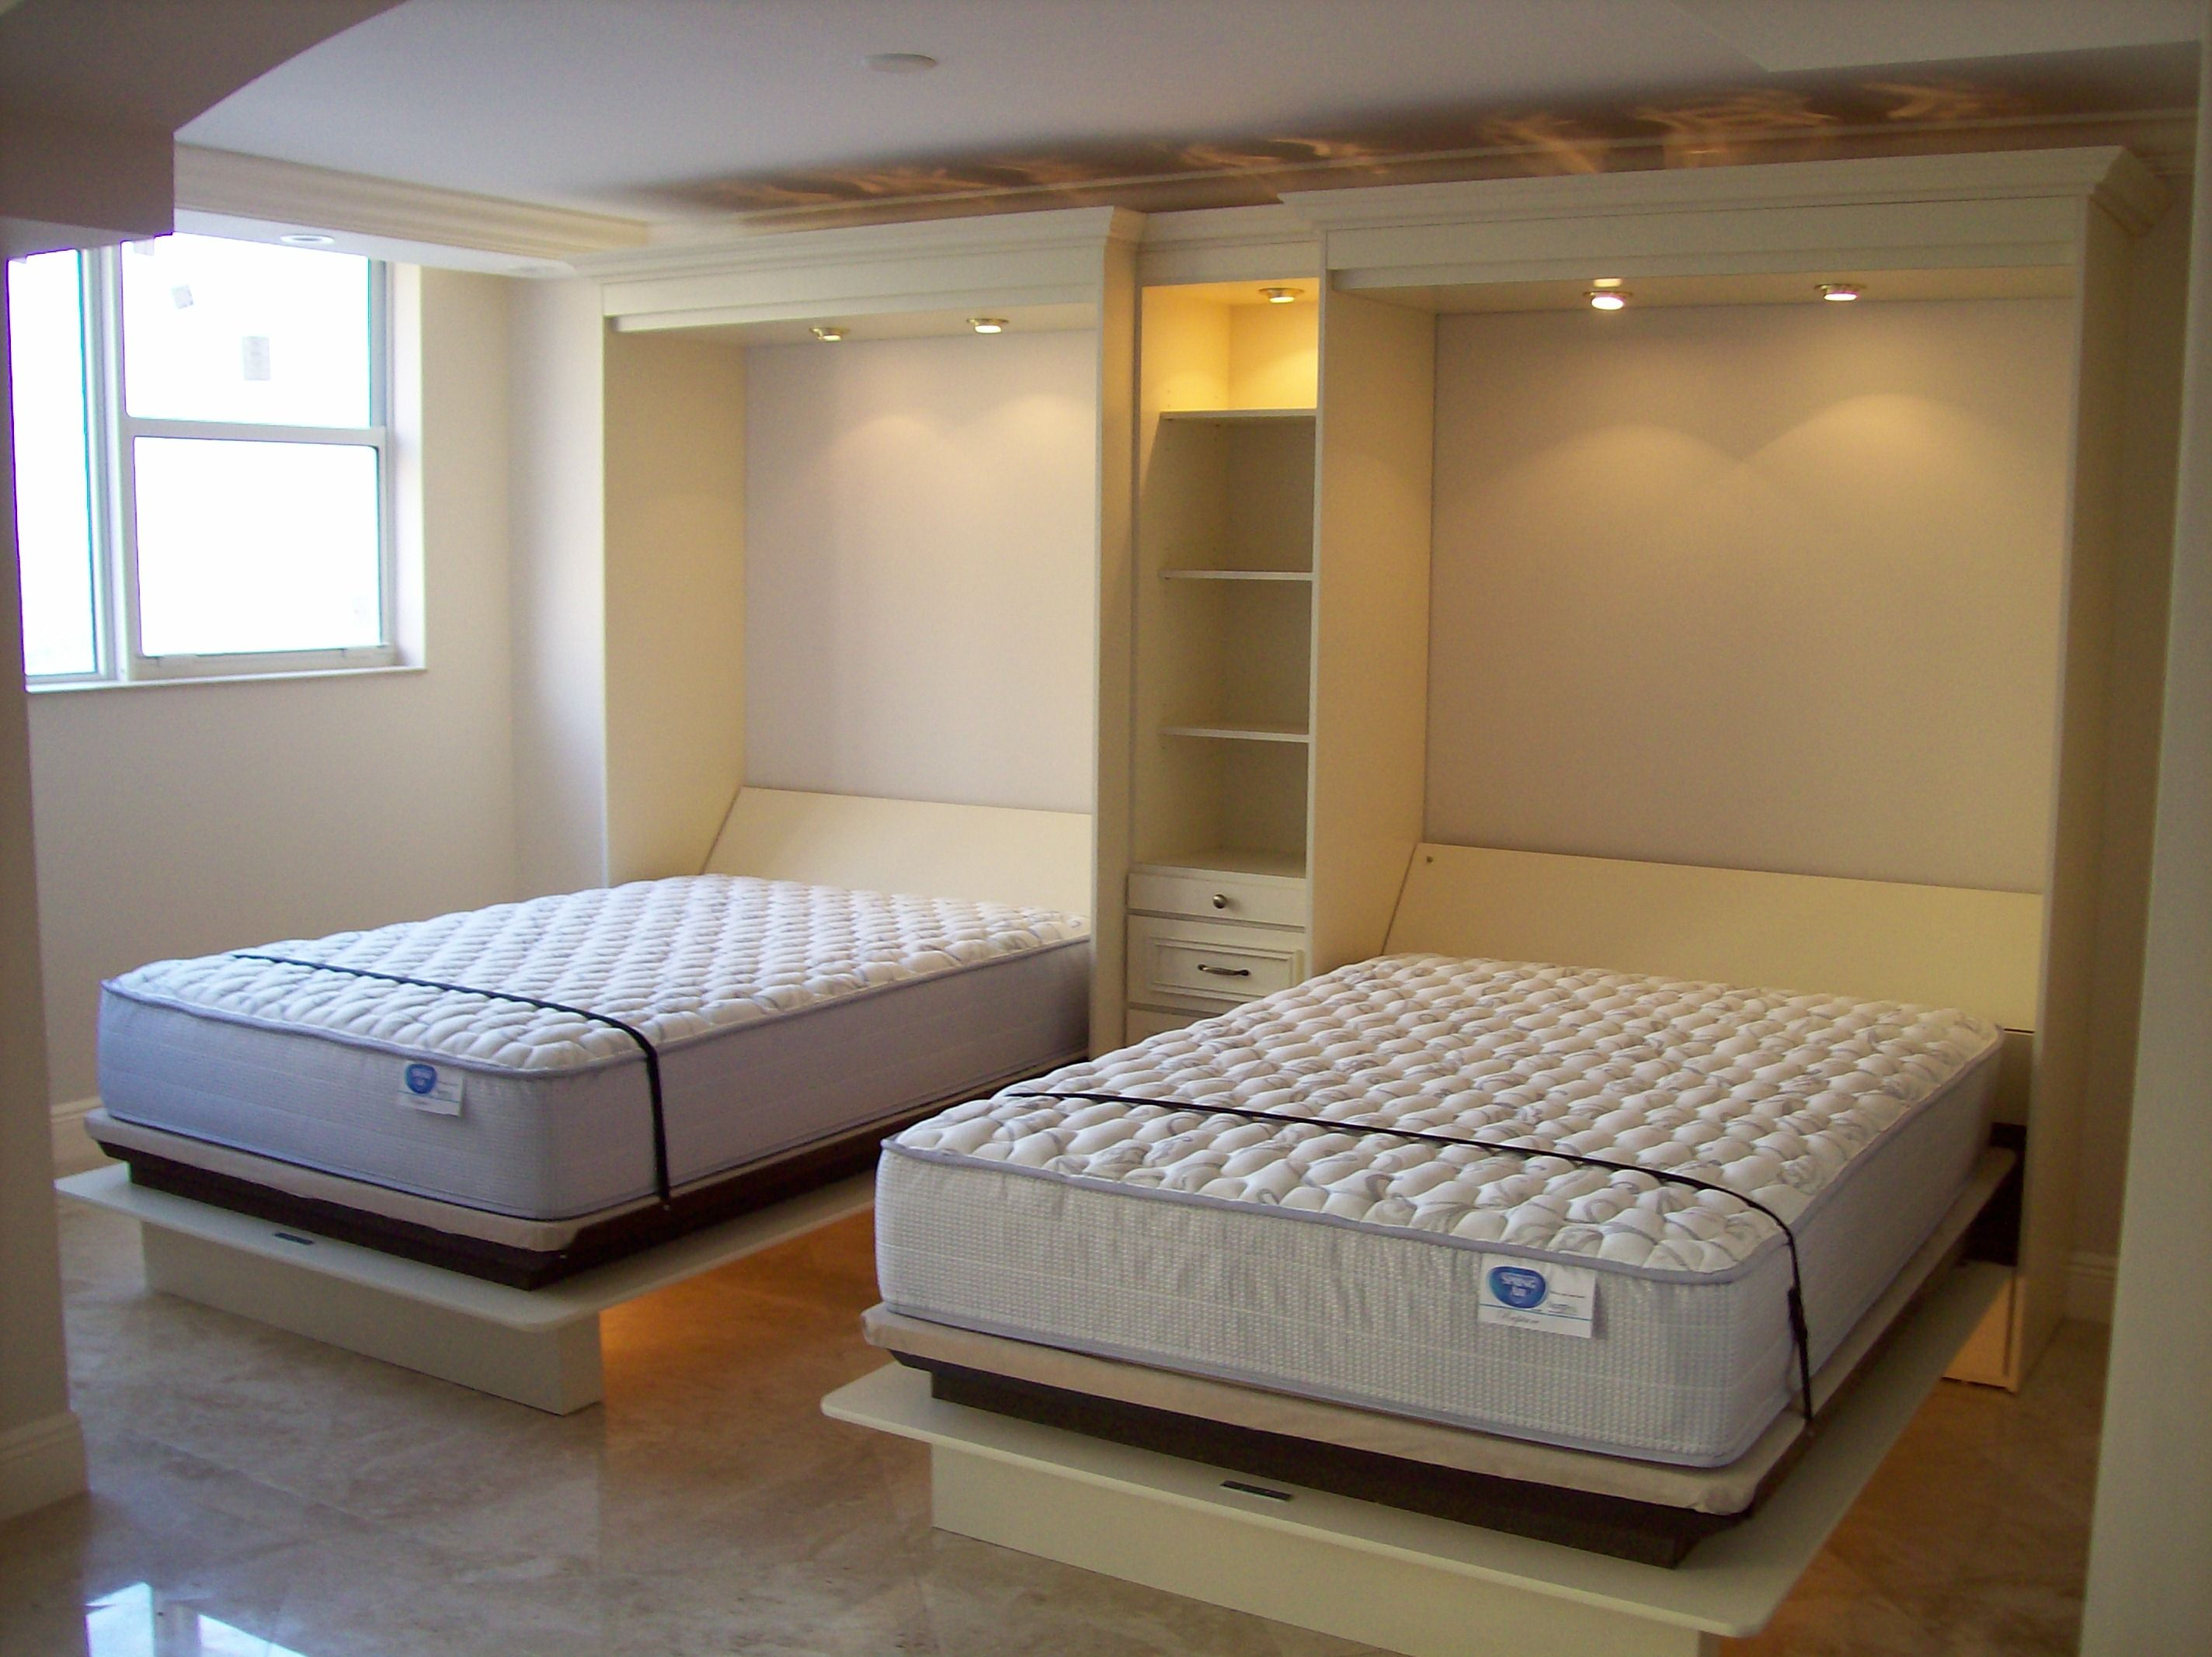 Two Full Size Beds Shown Open Full Size Bed Small Space